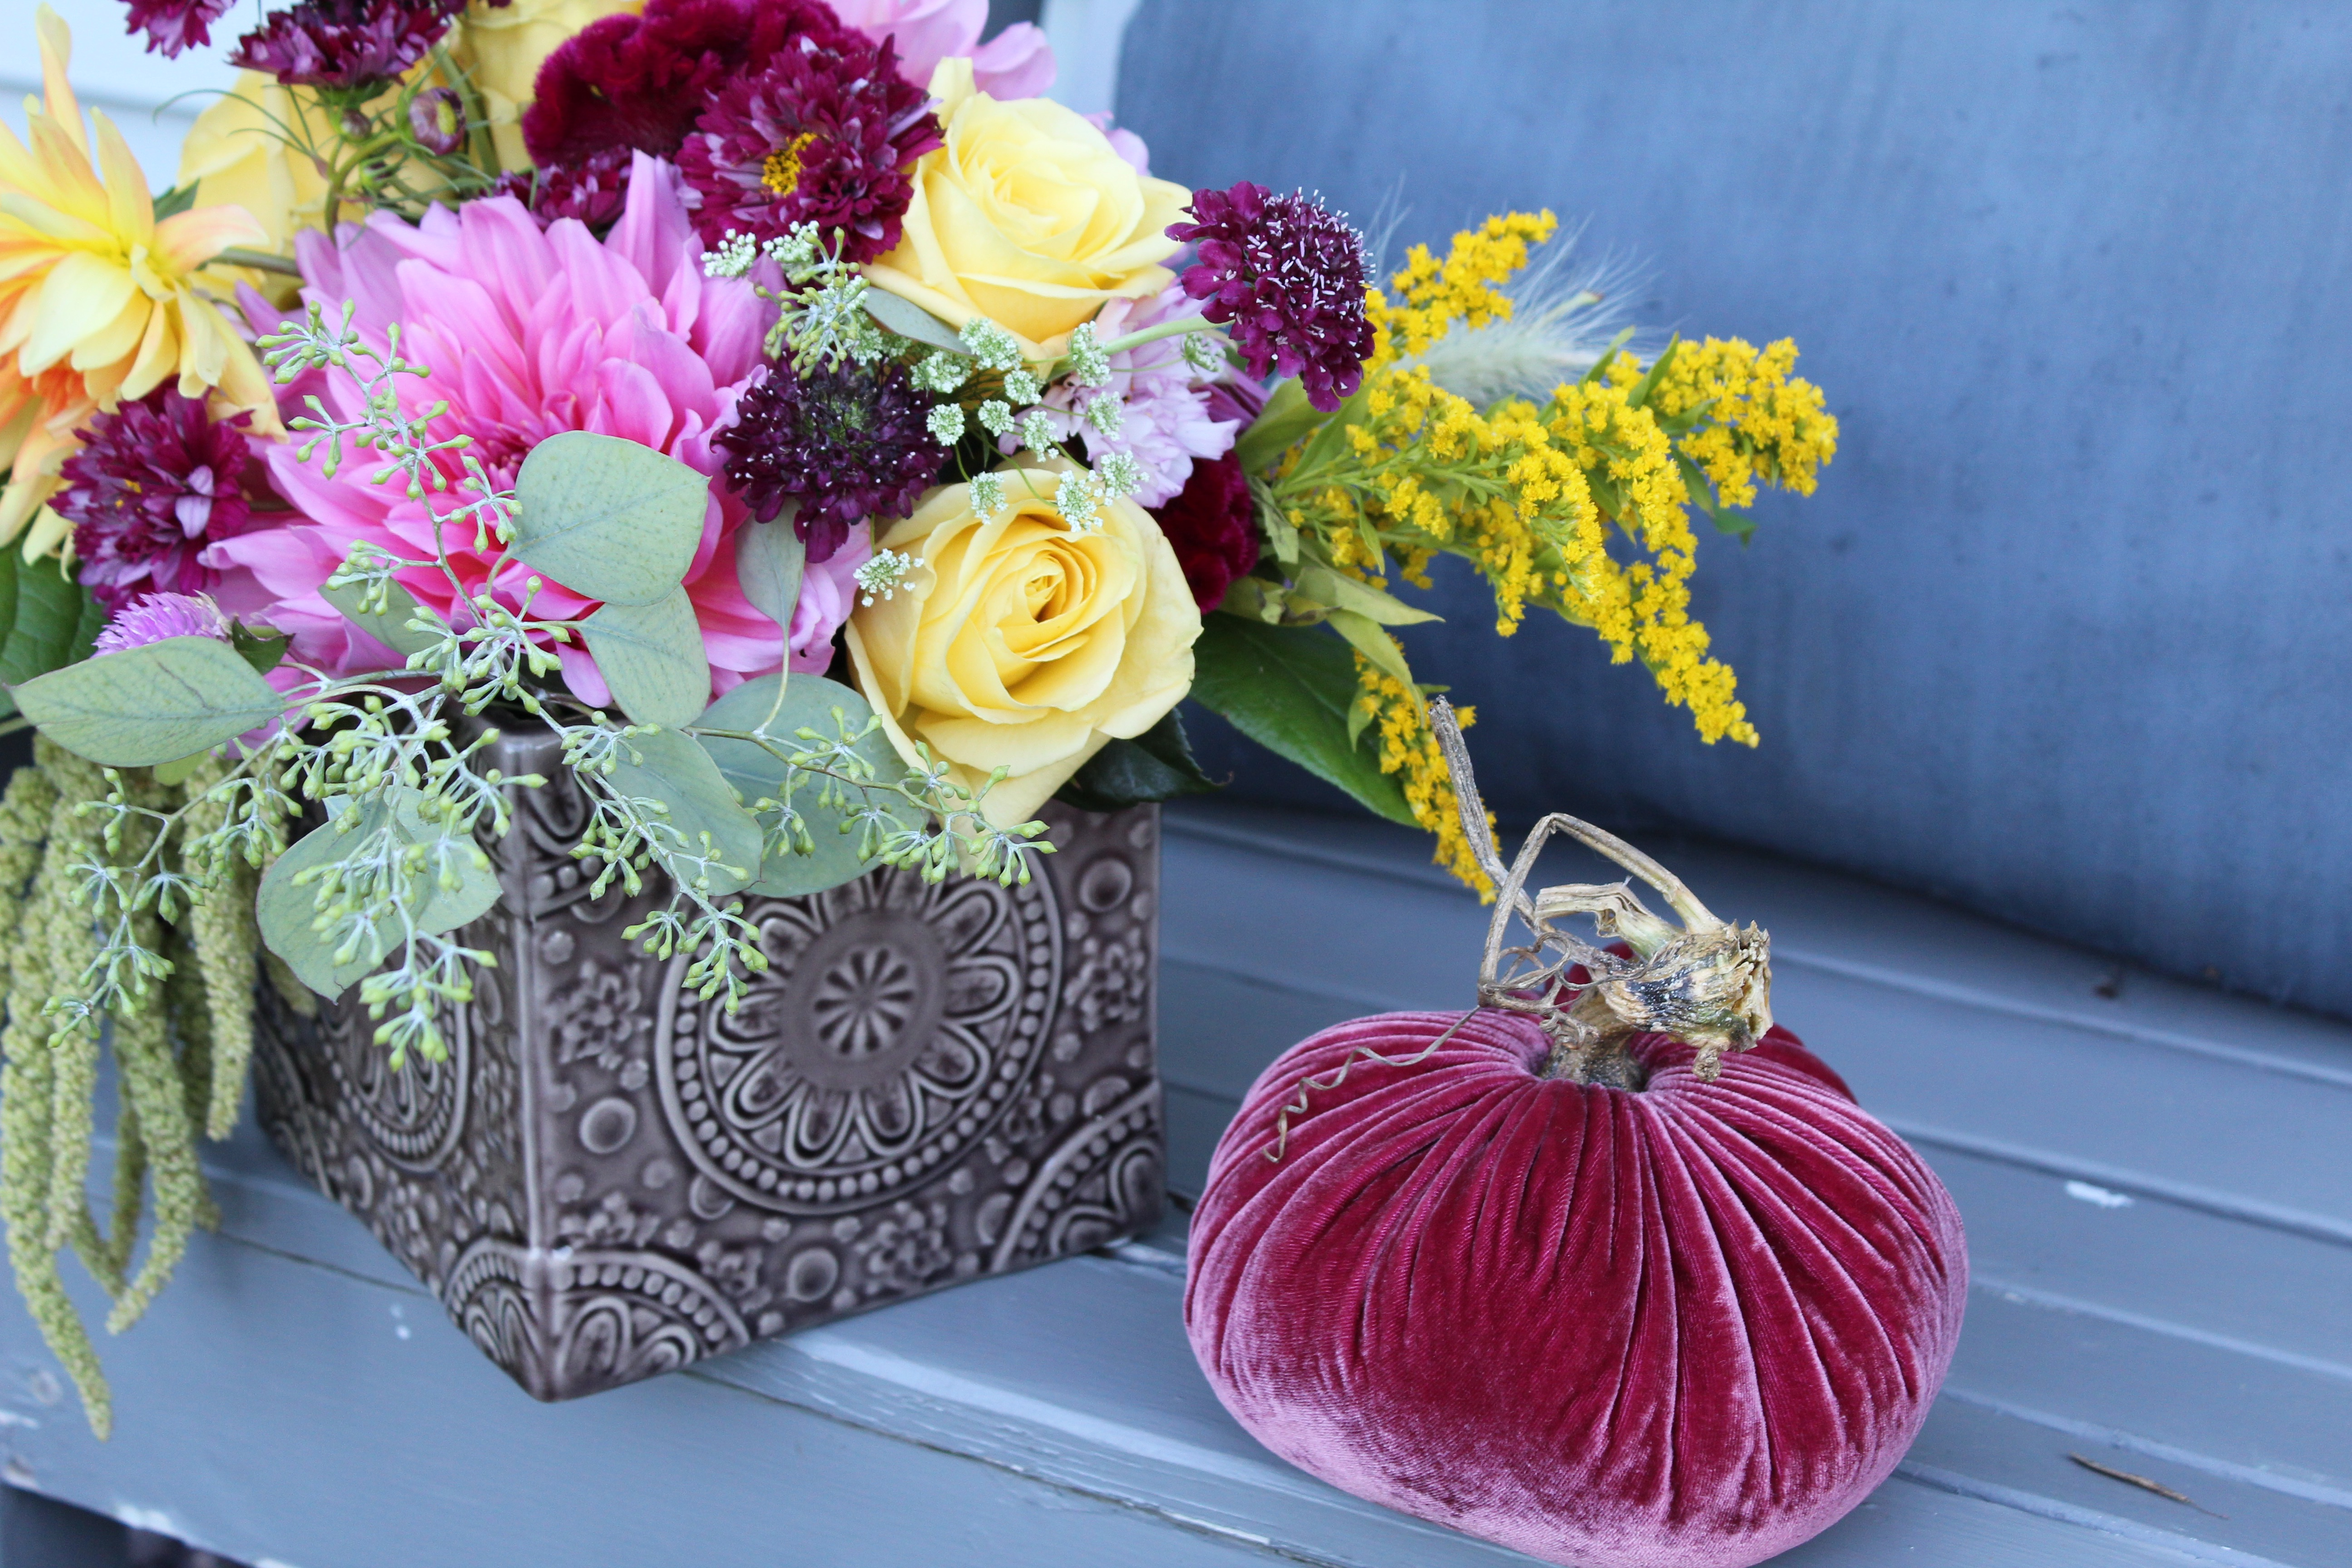 vignette styled with velvet pumpkin